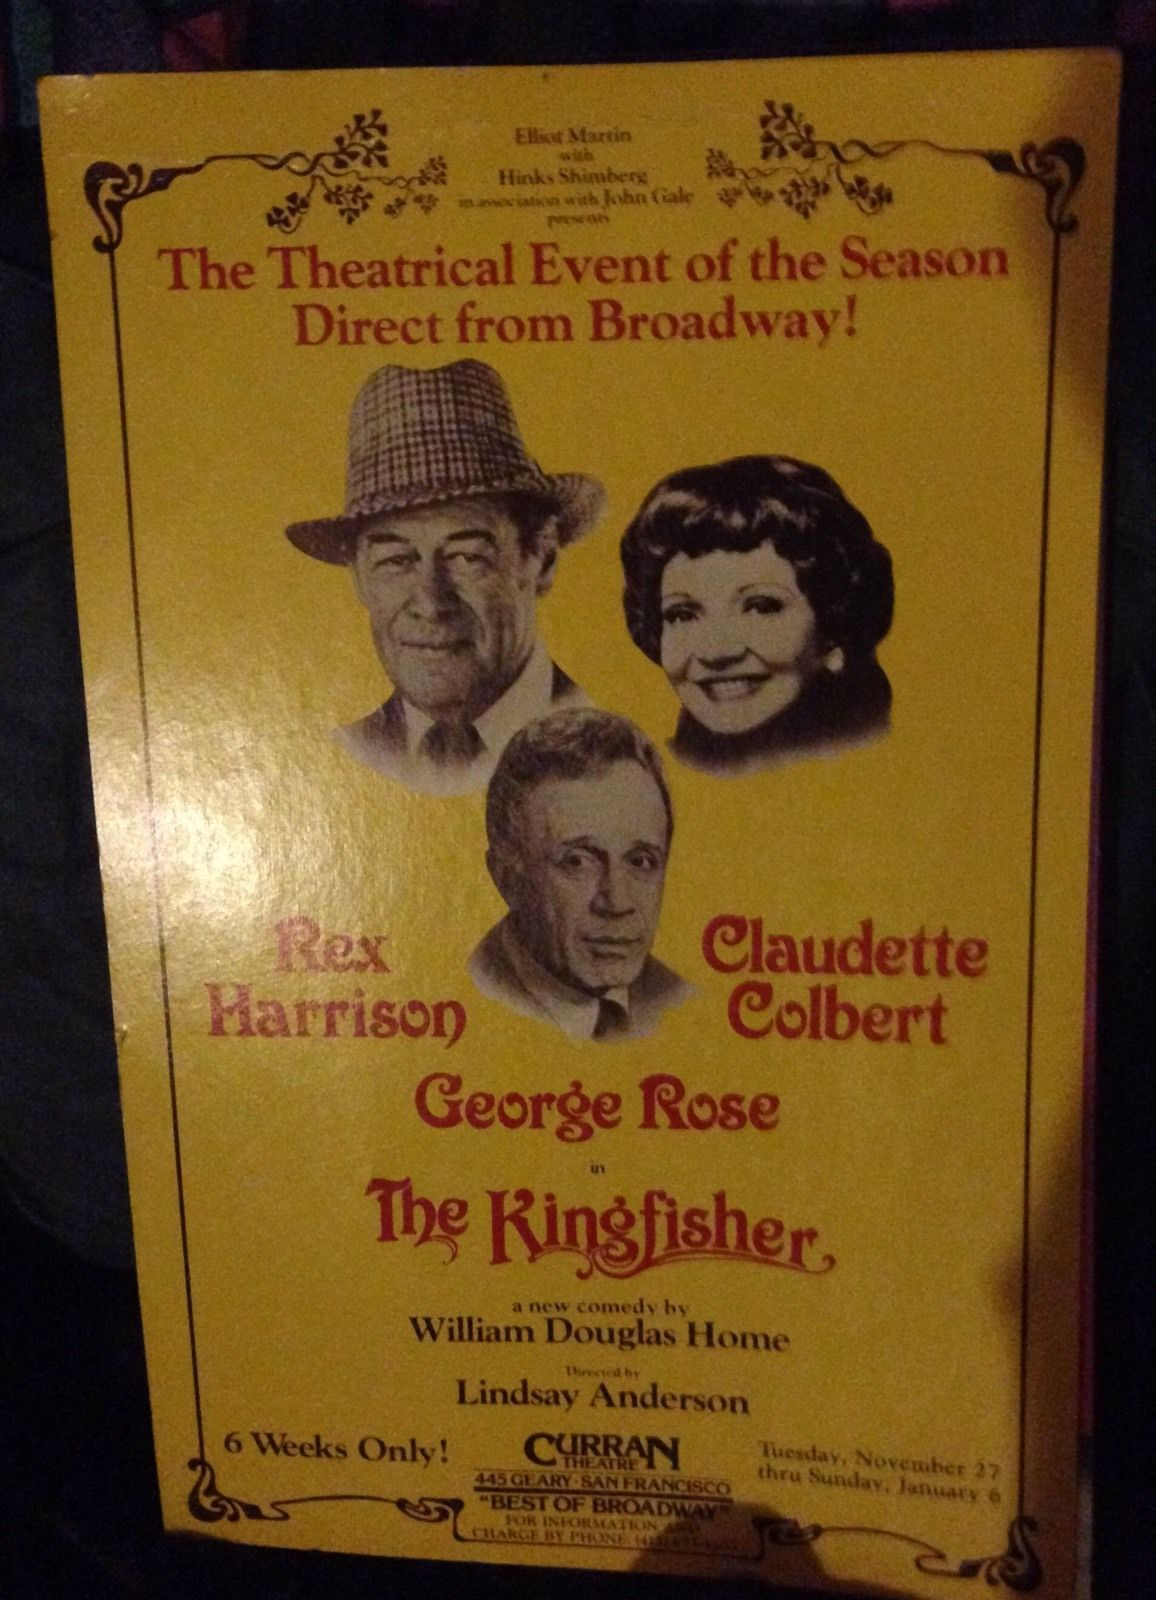 Rex Harrison in Kingfisher Poster - With Claudette Colbert and George Rose